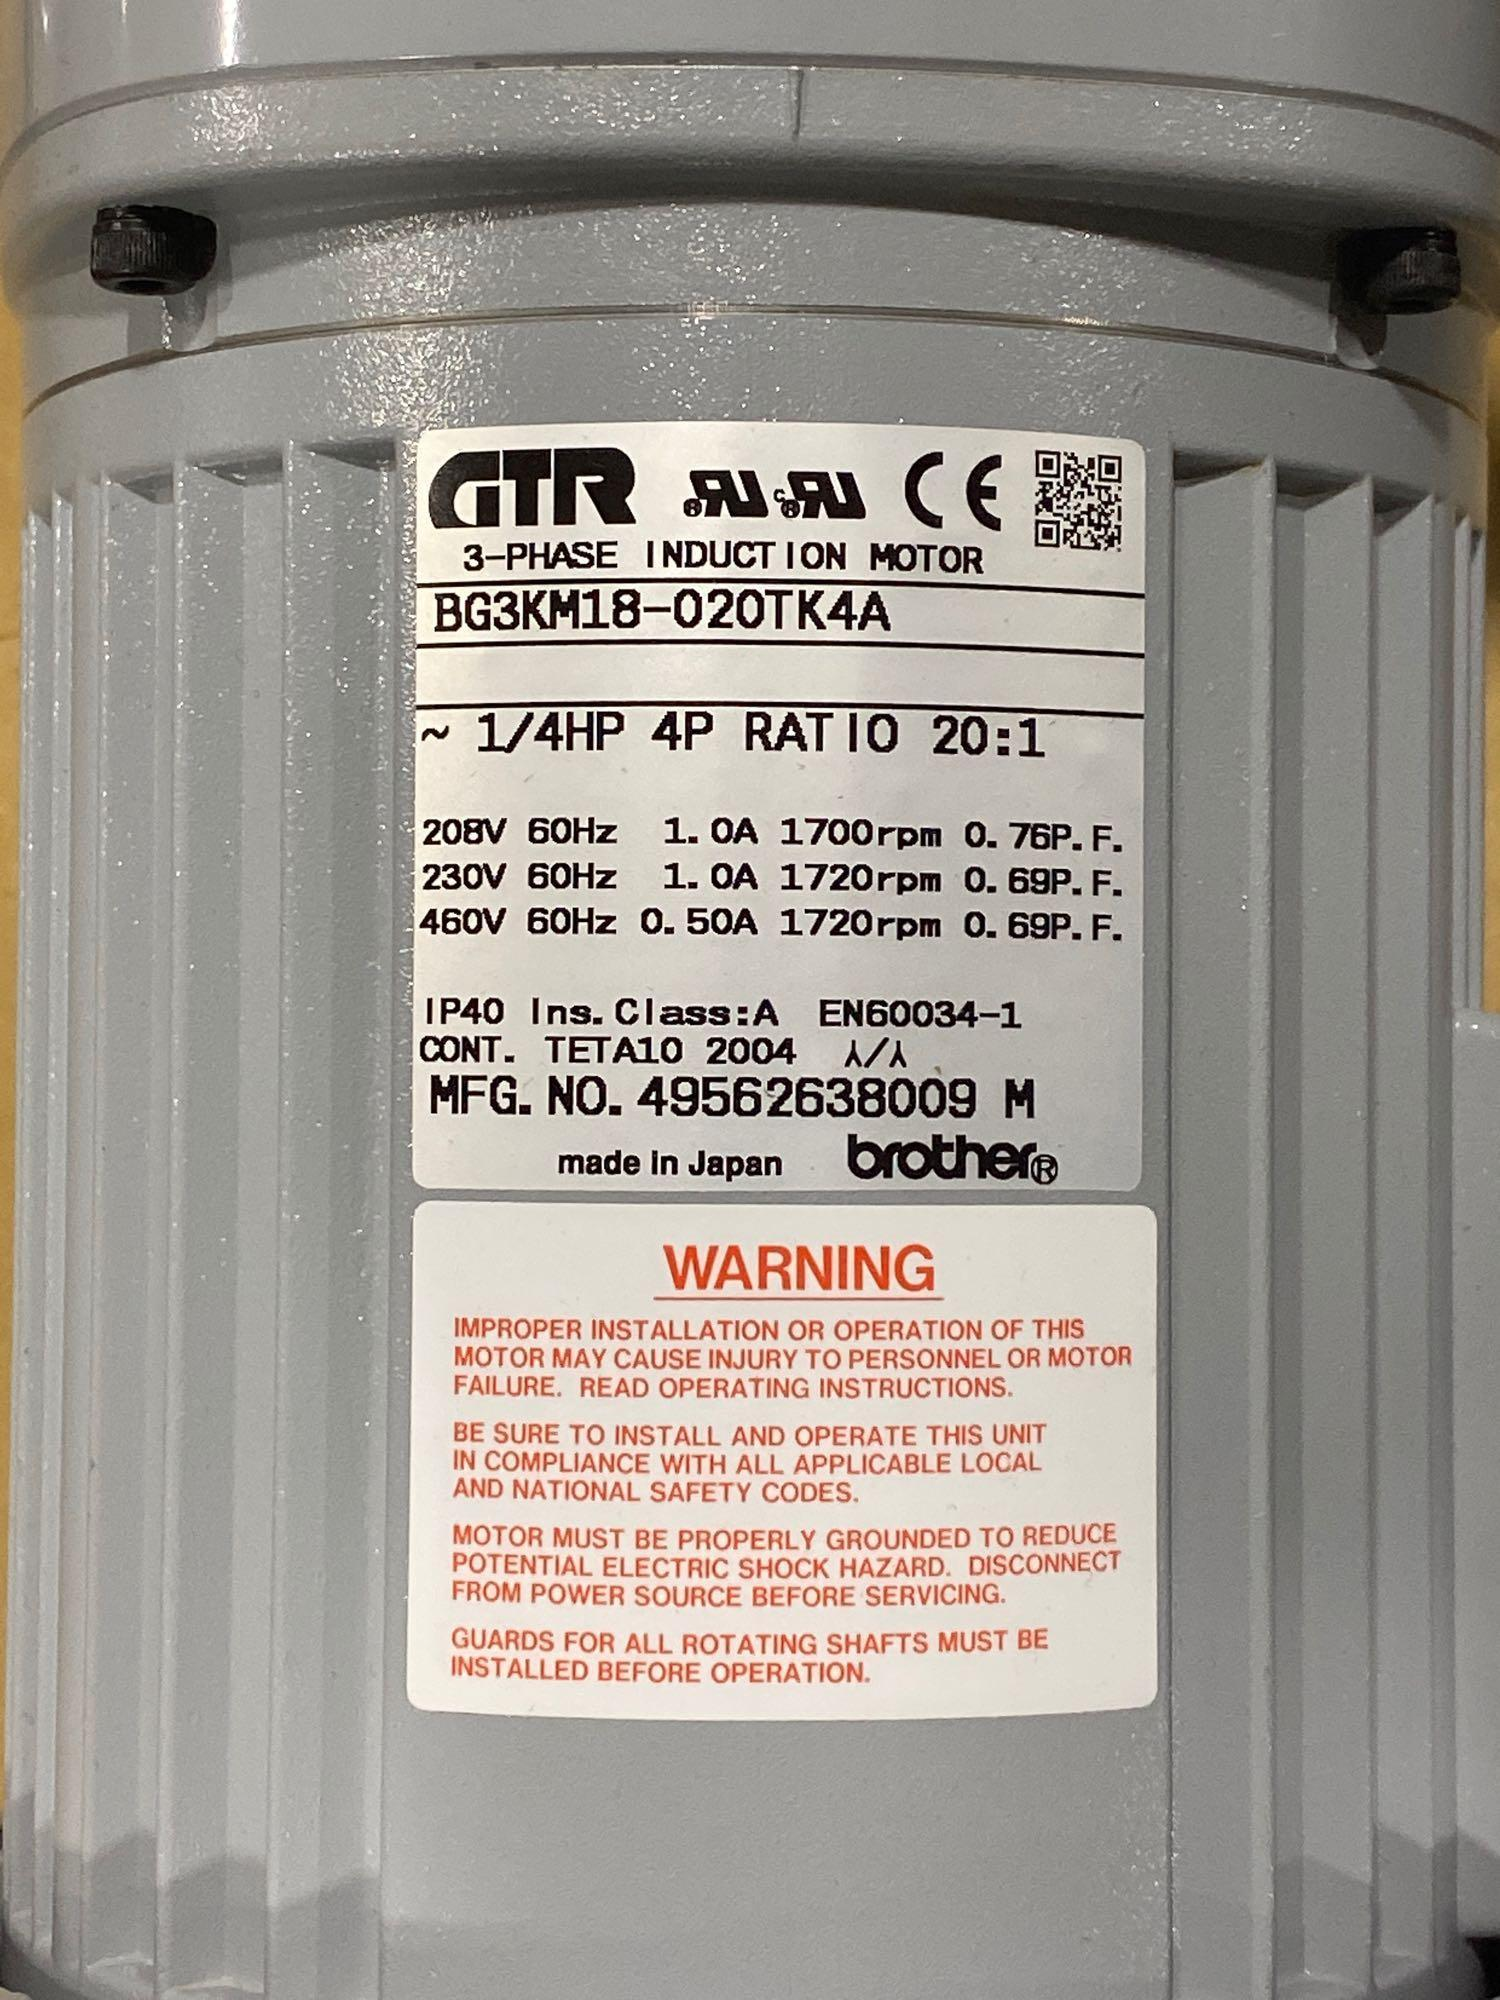 Lot 7 - Brother 3-phase induction motor model BG3KM18-020TK4A. New in box.